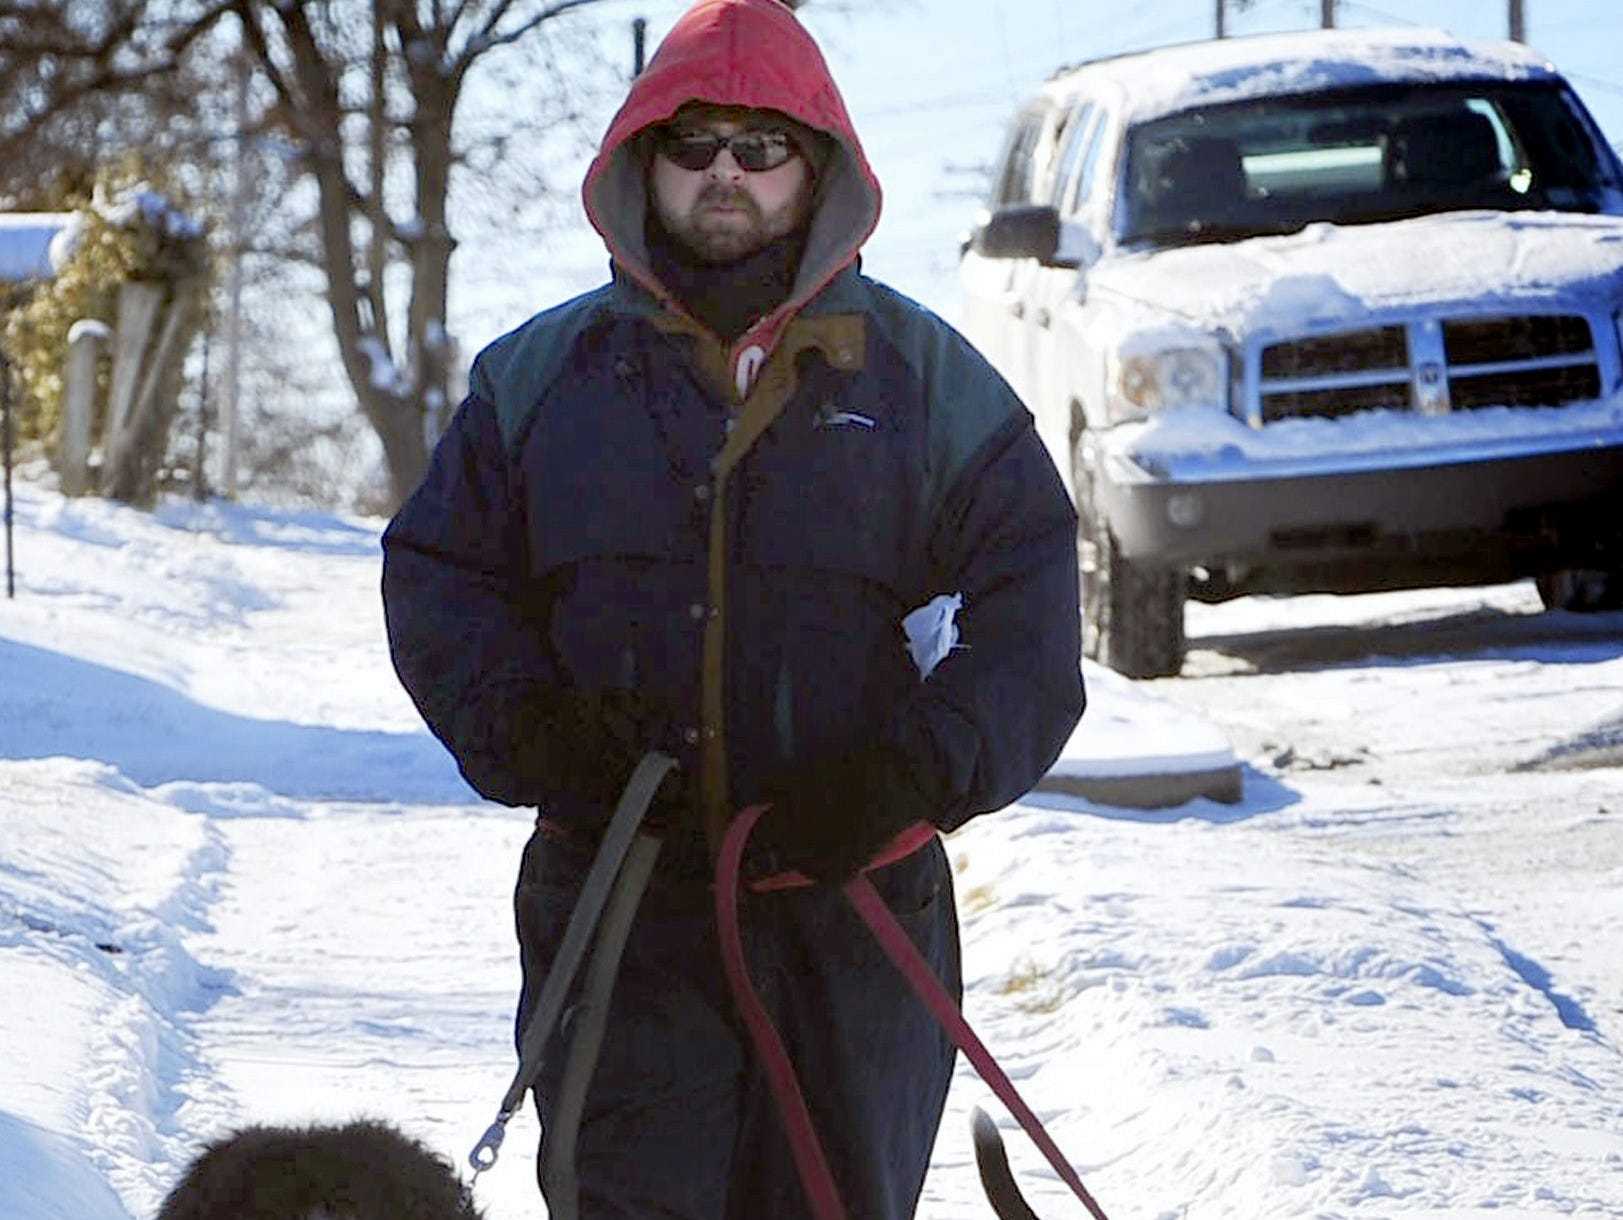 Terry Martin walks his dogs Riley, left, and Moby on the coldest day of the season Friday, Jan. 3, 2014 in Chambersburg, Pennsylvania. Morning temperatures were hovered around 10 degrees.